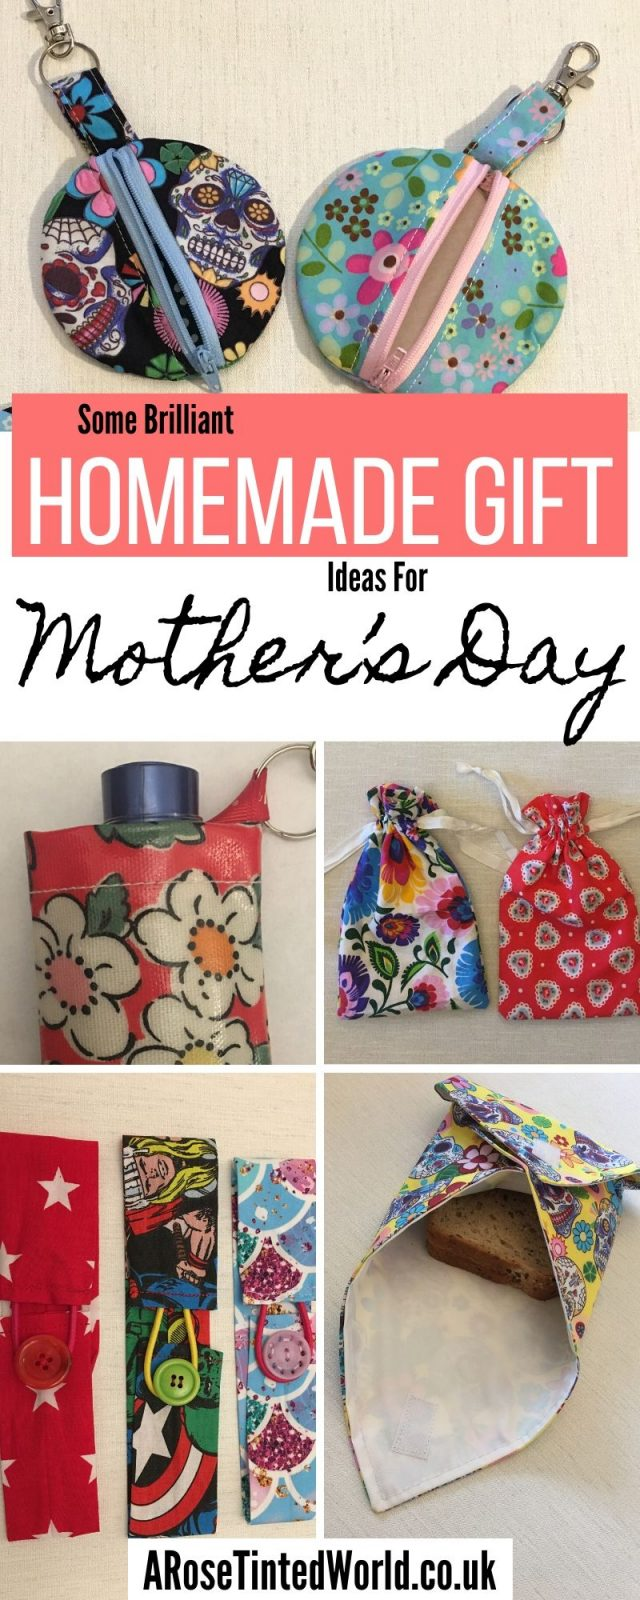 Homemade Gifts for Mother's Day - here are some great ideas of handmade presents to gift your Mum this year. Find tutorials for some great DIY presents! #mothersday #mothersdaycrafts #mothersdaydiy #handmadegifts #handmade #homemadegift #homemadegifts #homemade #giftideas #diygifts #sewing #sewinggifts